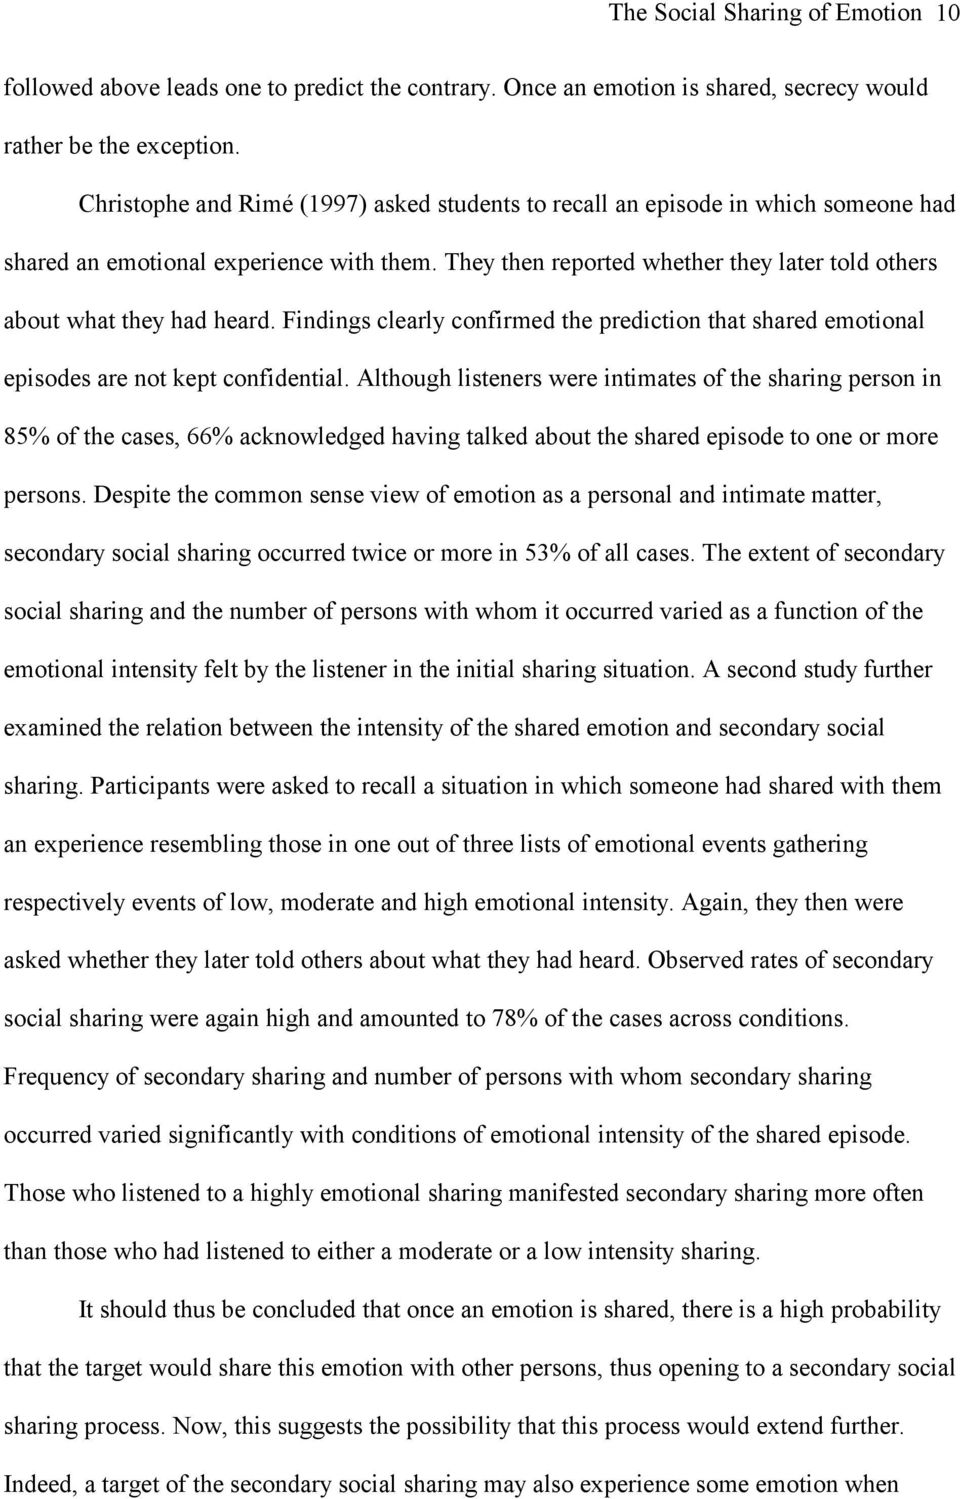 They then reported whether they later told others about what they had heard. Findings clearly confirmed the prediction that shared emotional episodes are not kept confidential.